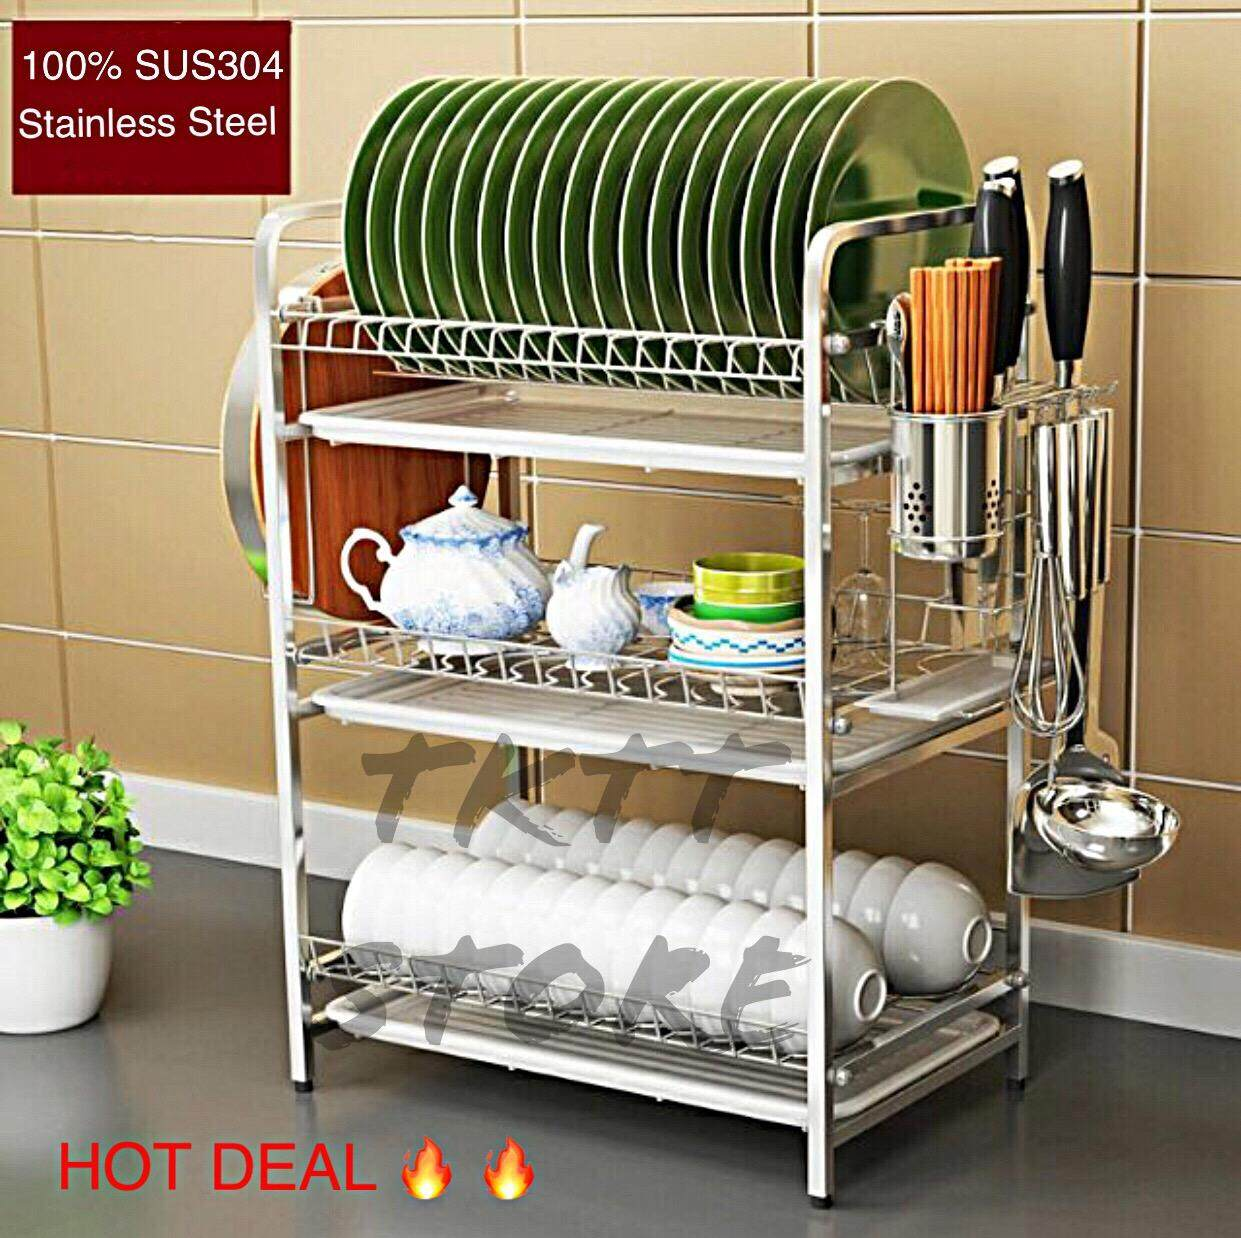 TKTT 3 Tiers SUS304 Stainless Steel Dishes Rack With Side Cutlery Holder/ Dishes Drainer/